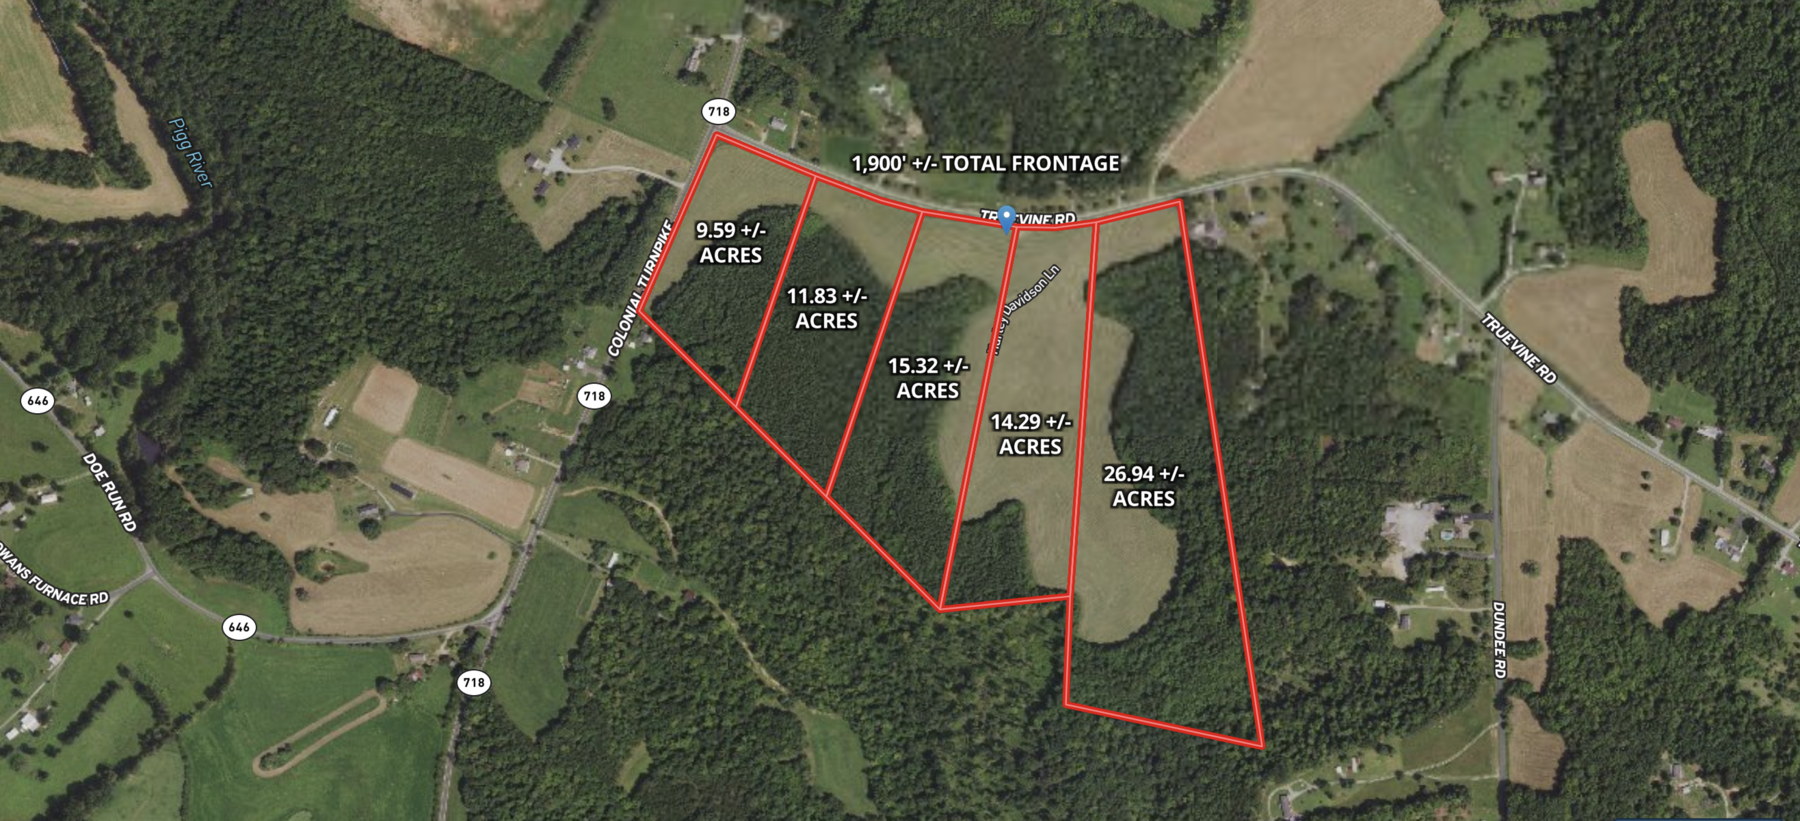 Image for Parcel 4 (14.29+/- acres) of 5 Individual Land Parcels Totaling 77.9 +/- Acres in Franklin County, VA, Only 10 Miles from Smith Mountain Lake--ONLINE ONLY BIDDING!!